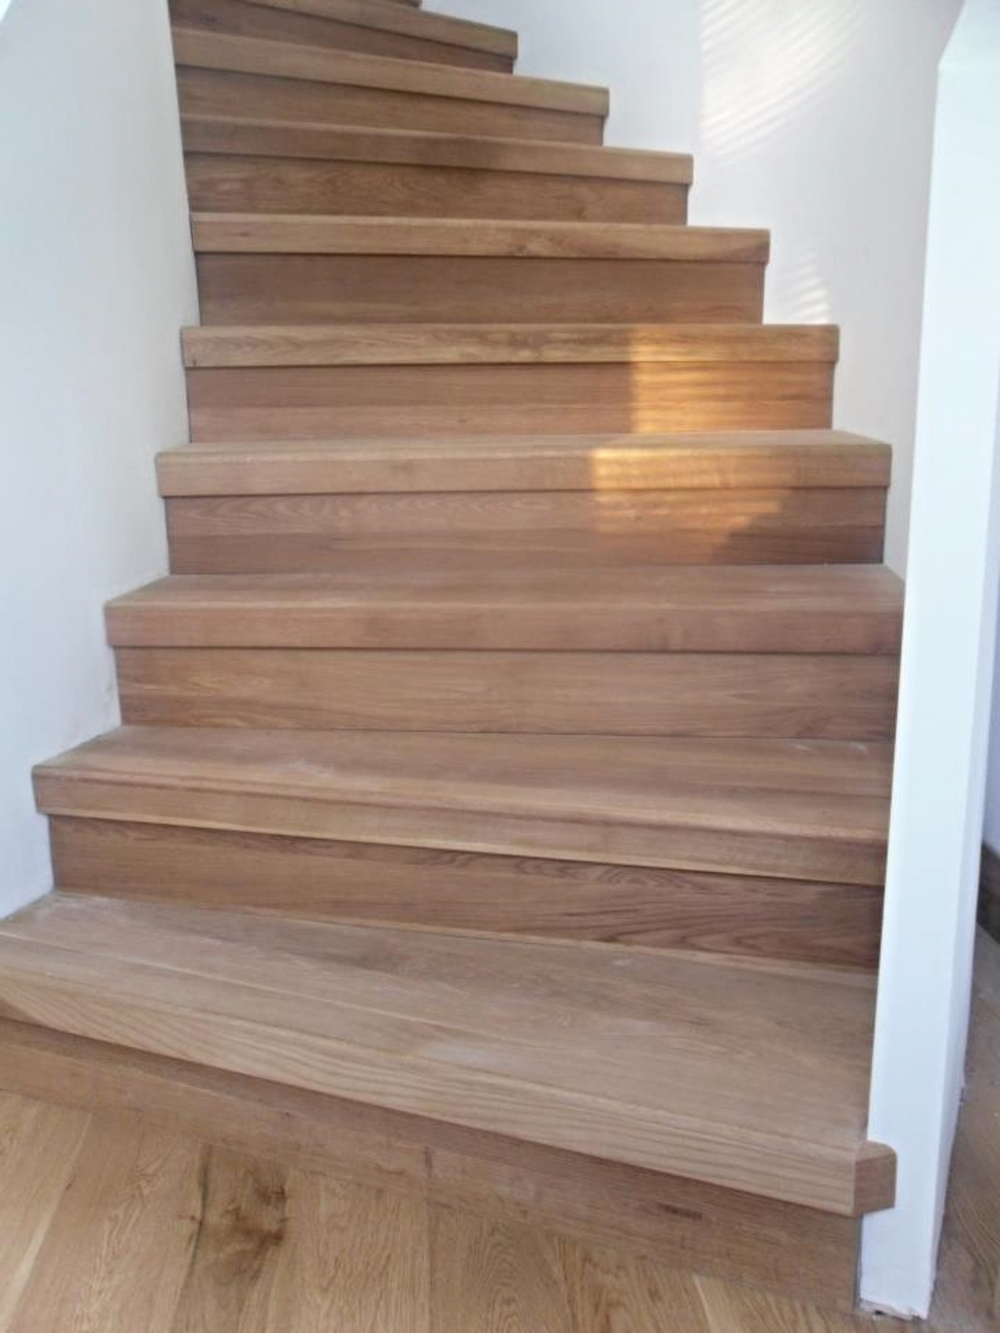 Stair treads risers oak original stair tread 1000 x 305 - Interior stair treads and risers ...